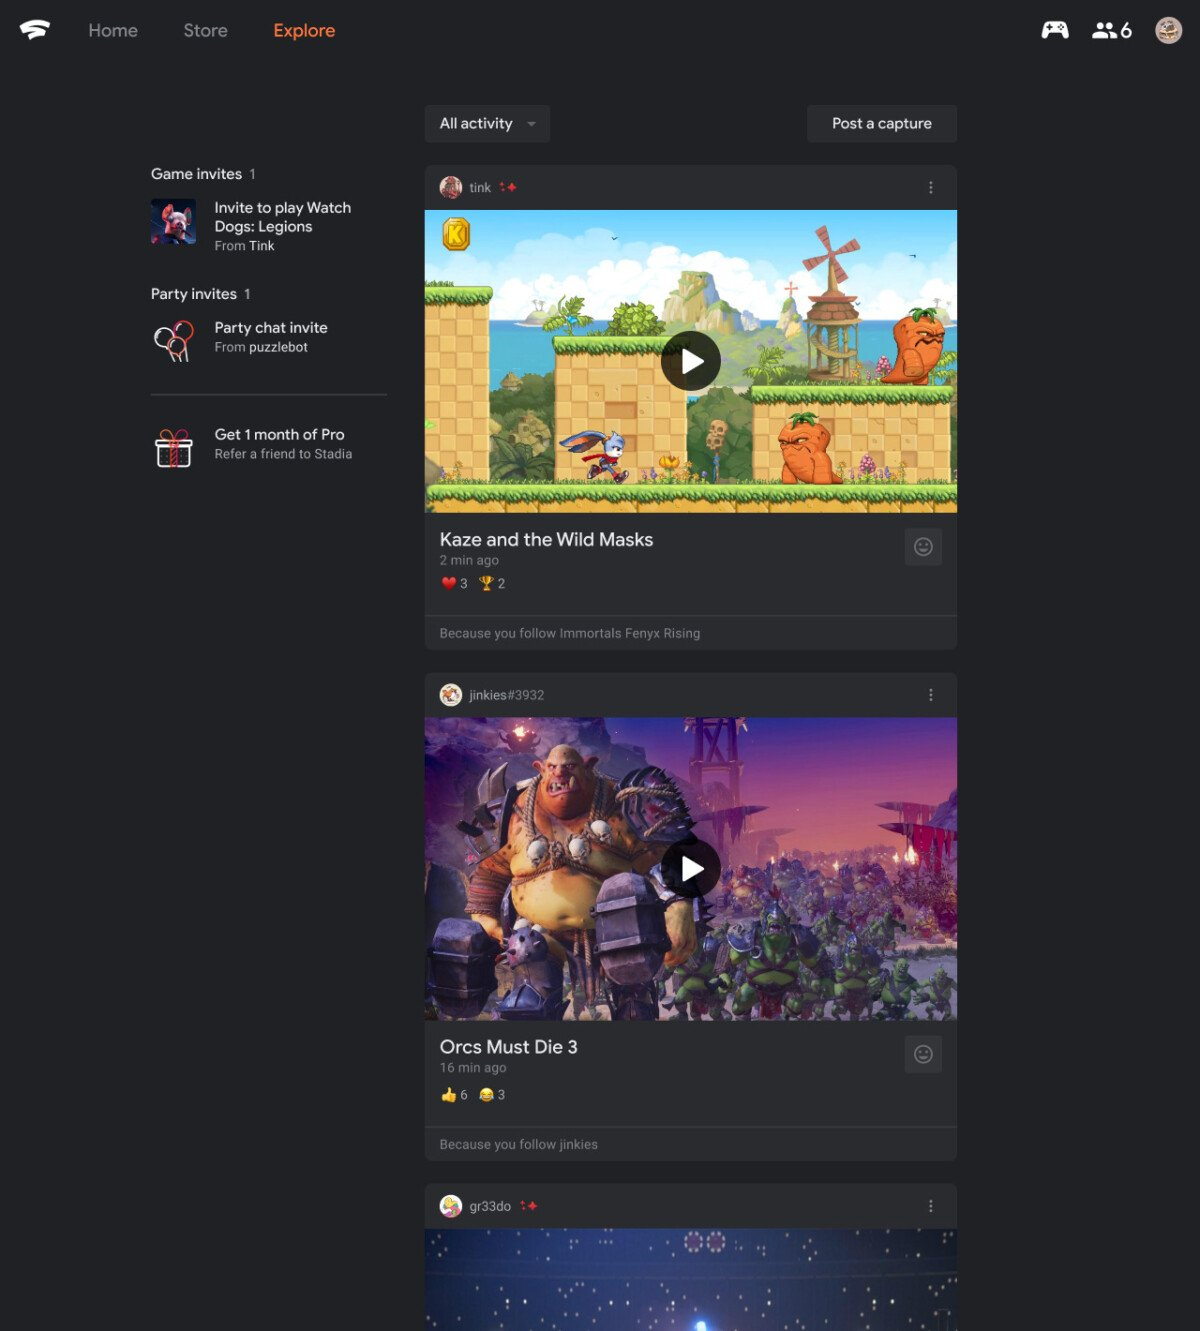 Google Stadia adds an activity feed with your friends' information